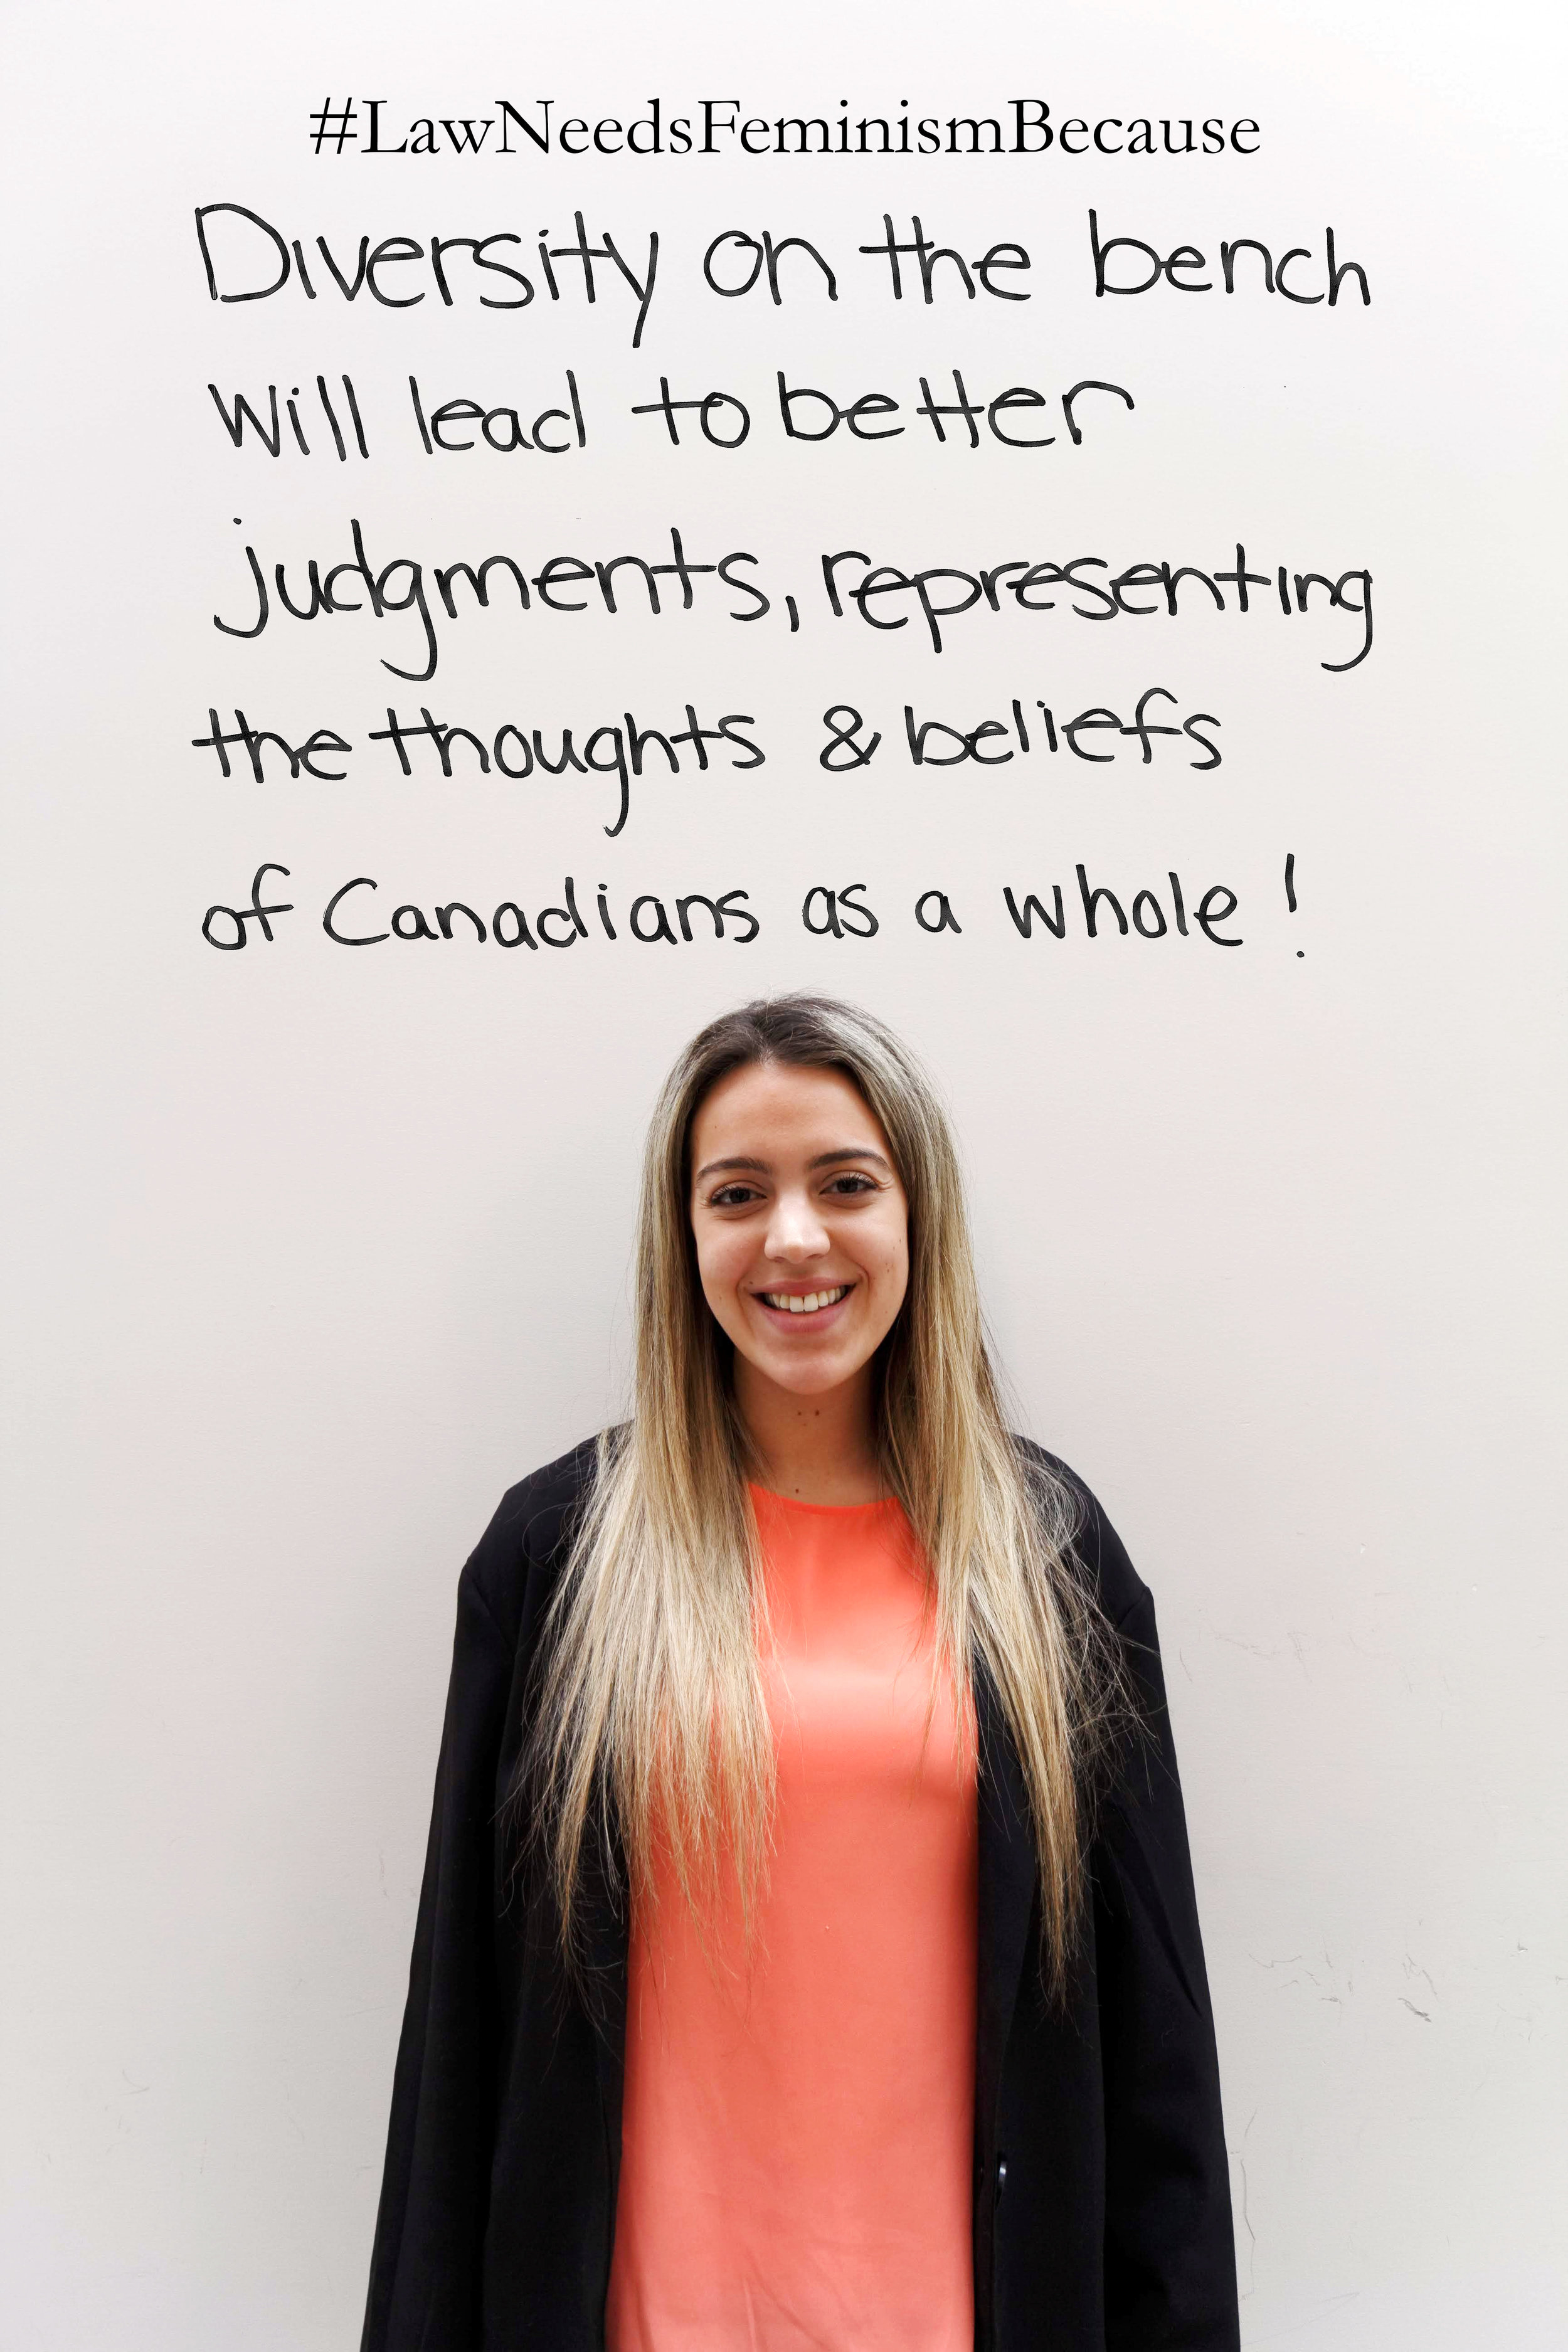 """Law Needs Feminism Because  """"Diversity on the bench will lead to better judgments, representing the thoughts & beliefs of Canadians as a whole."""""""